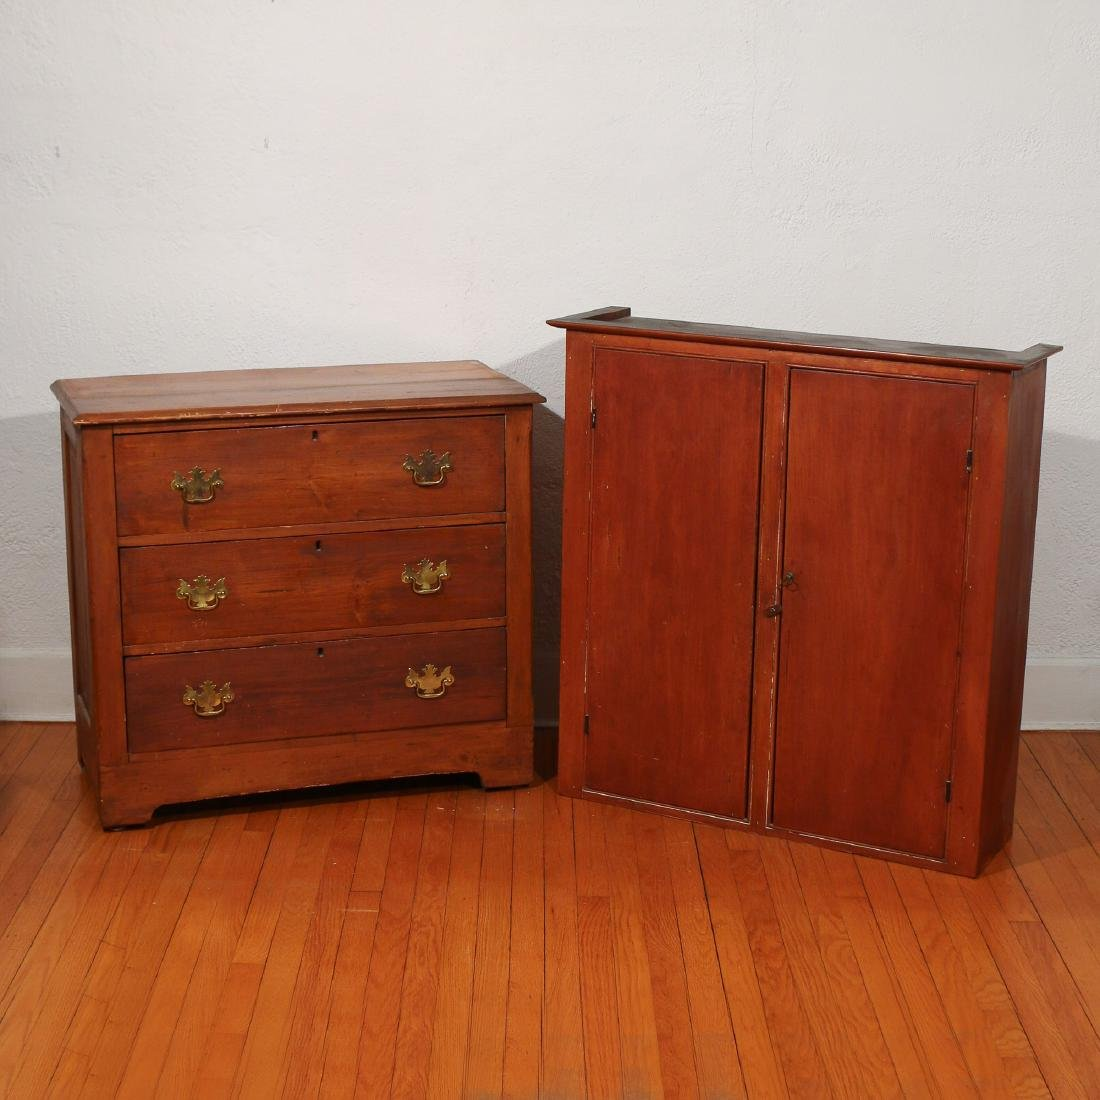 (2pc) PRIMITIVE AMERICAN CASE FURNITURE